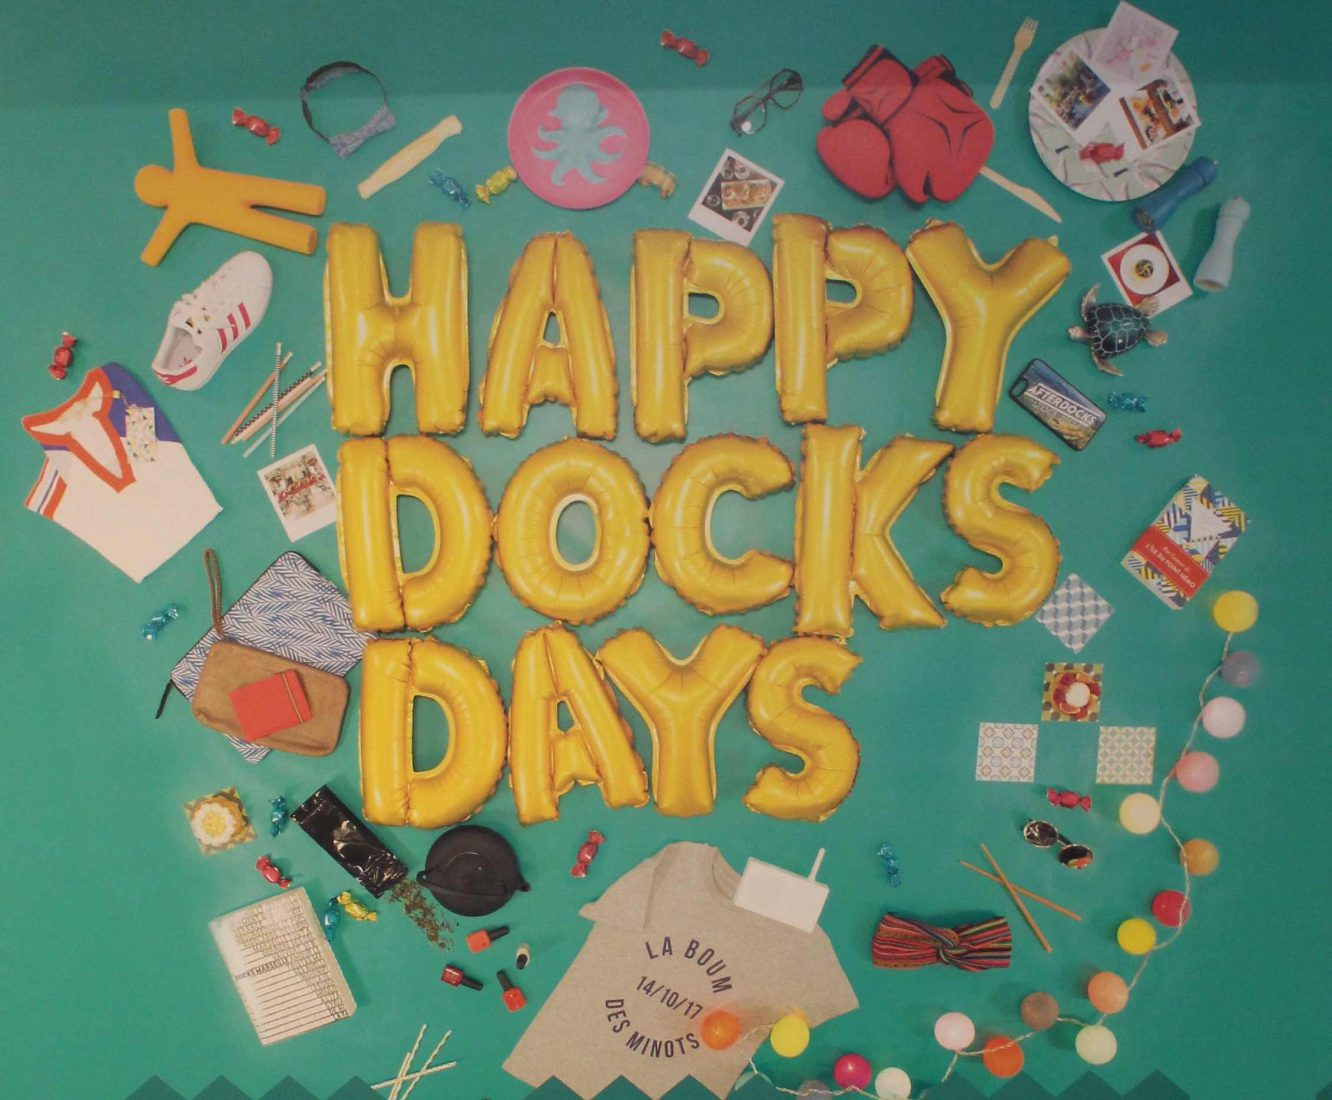 Marseille les Docks Affiche Happy Docks Days